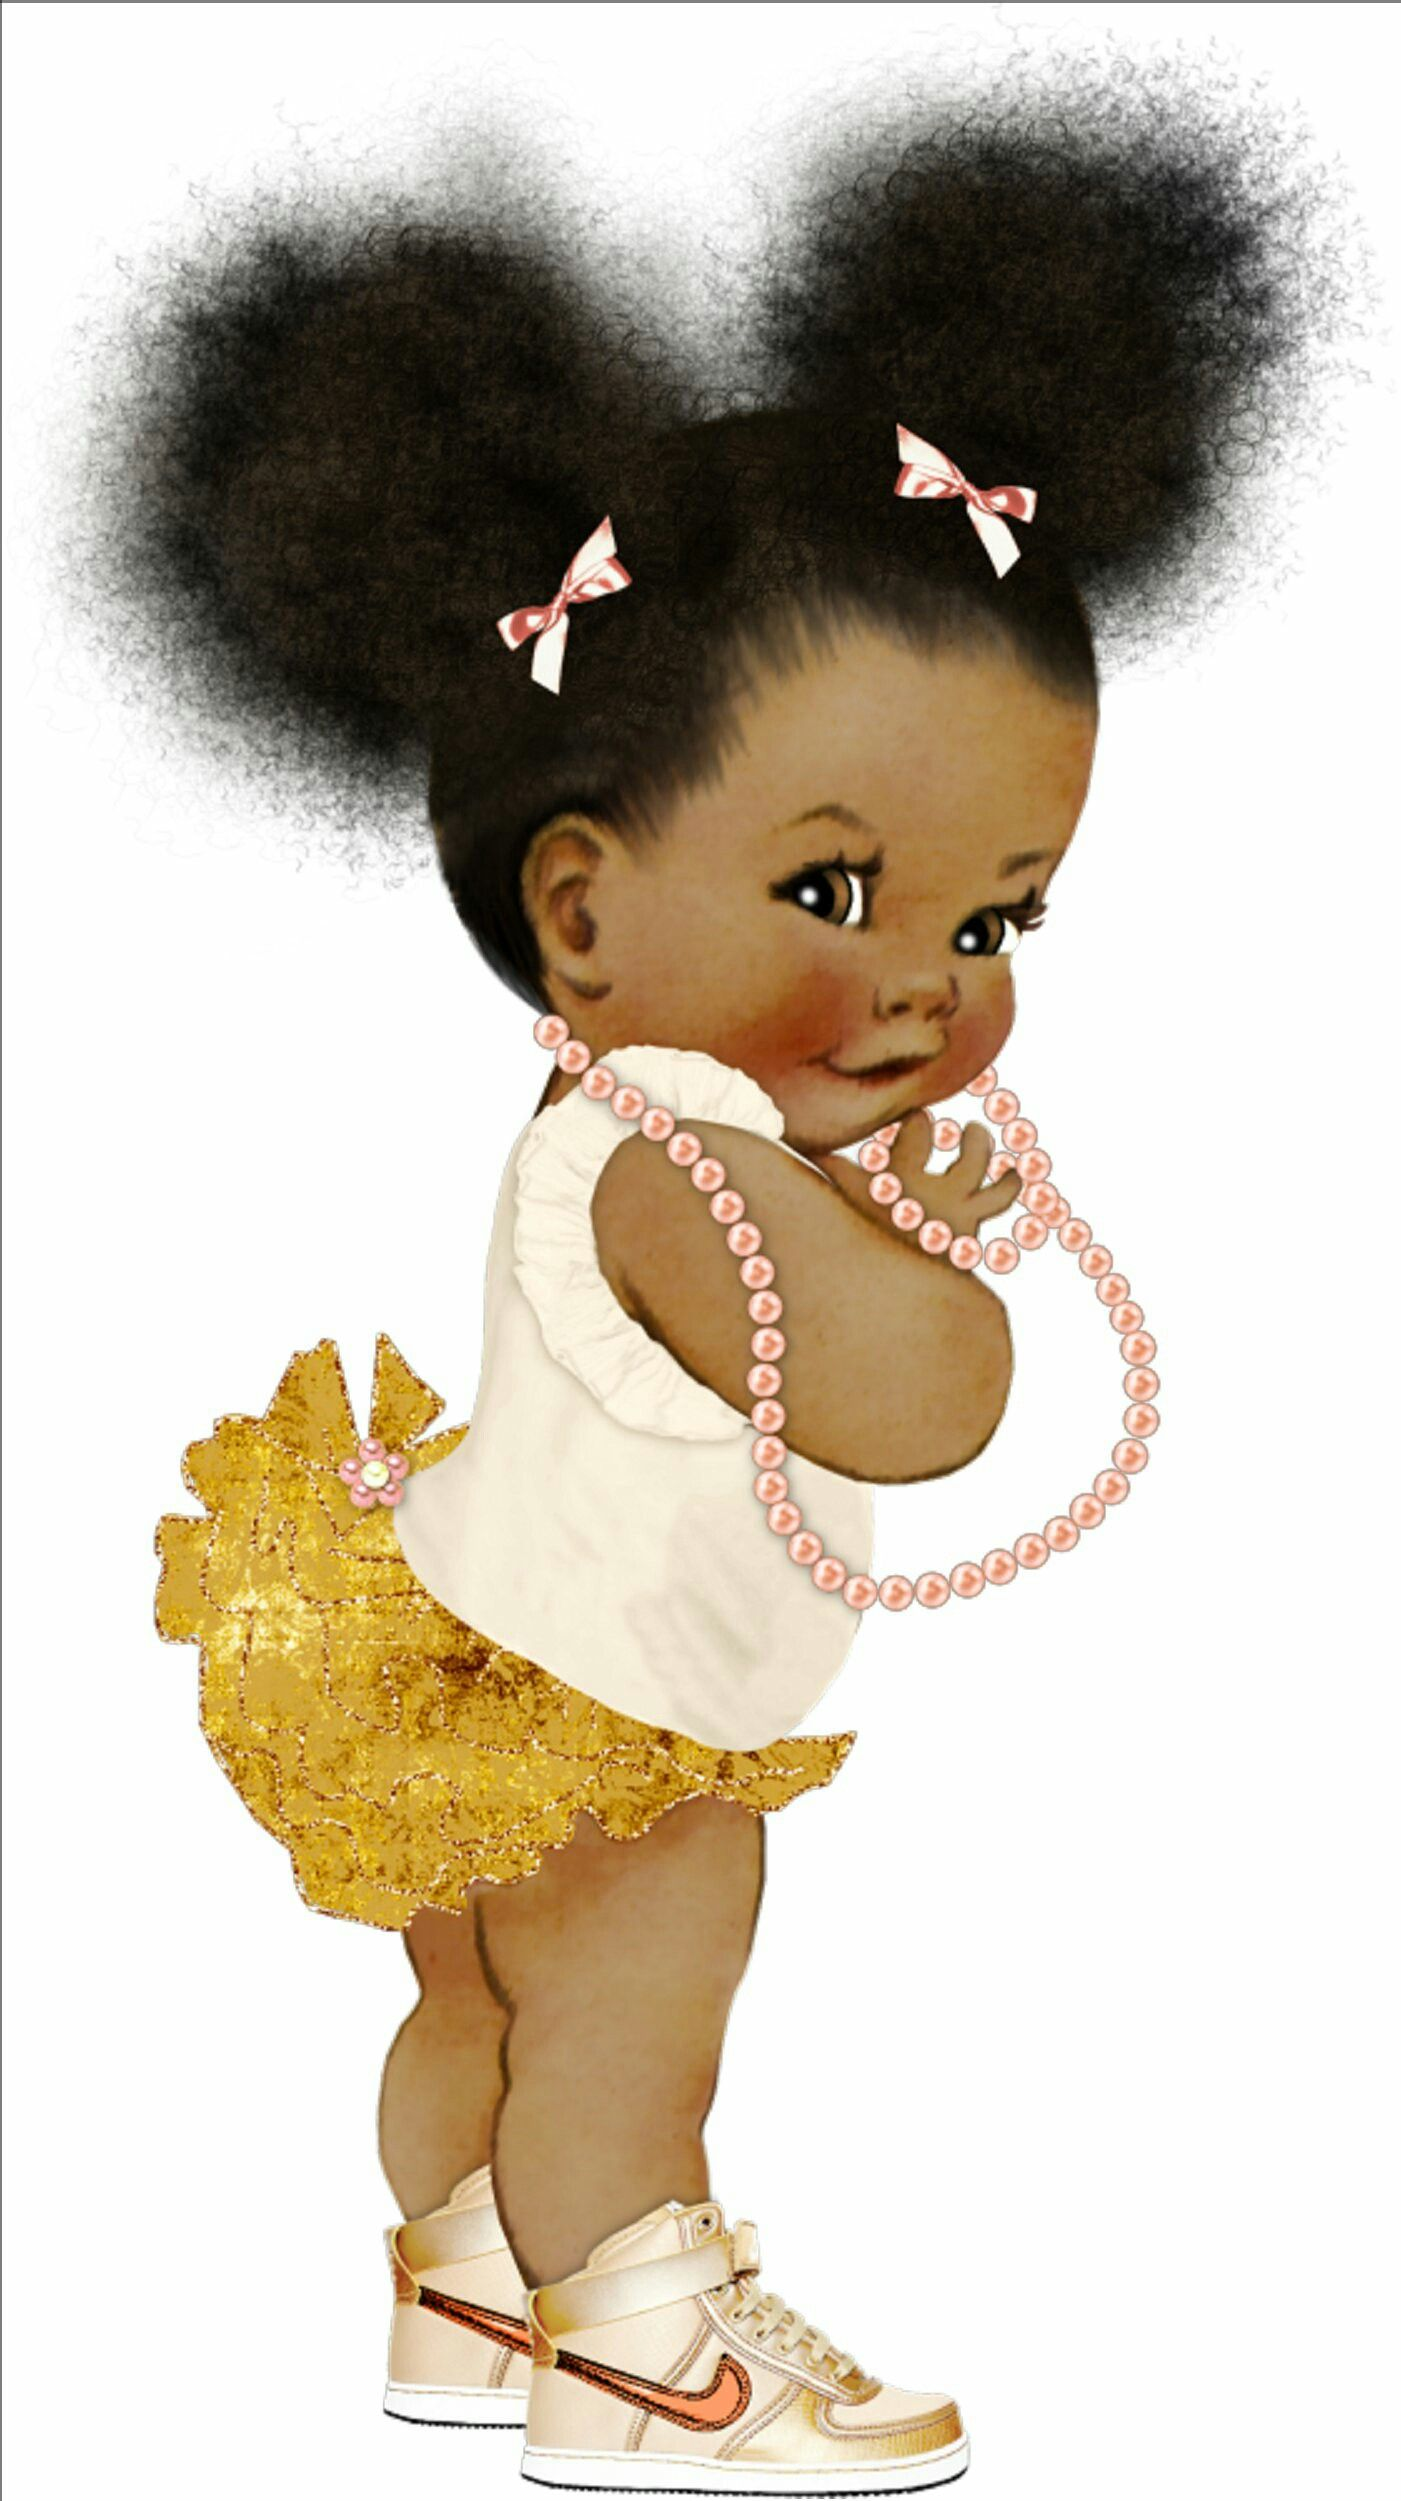 Pin By Louisa Bezuidenhout On It S All About Emojis Emojis Everywhere Black Baby Art Baby Afro Baby Girl Cakes